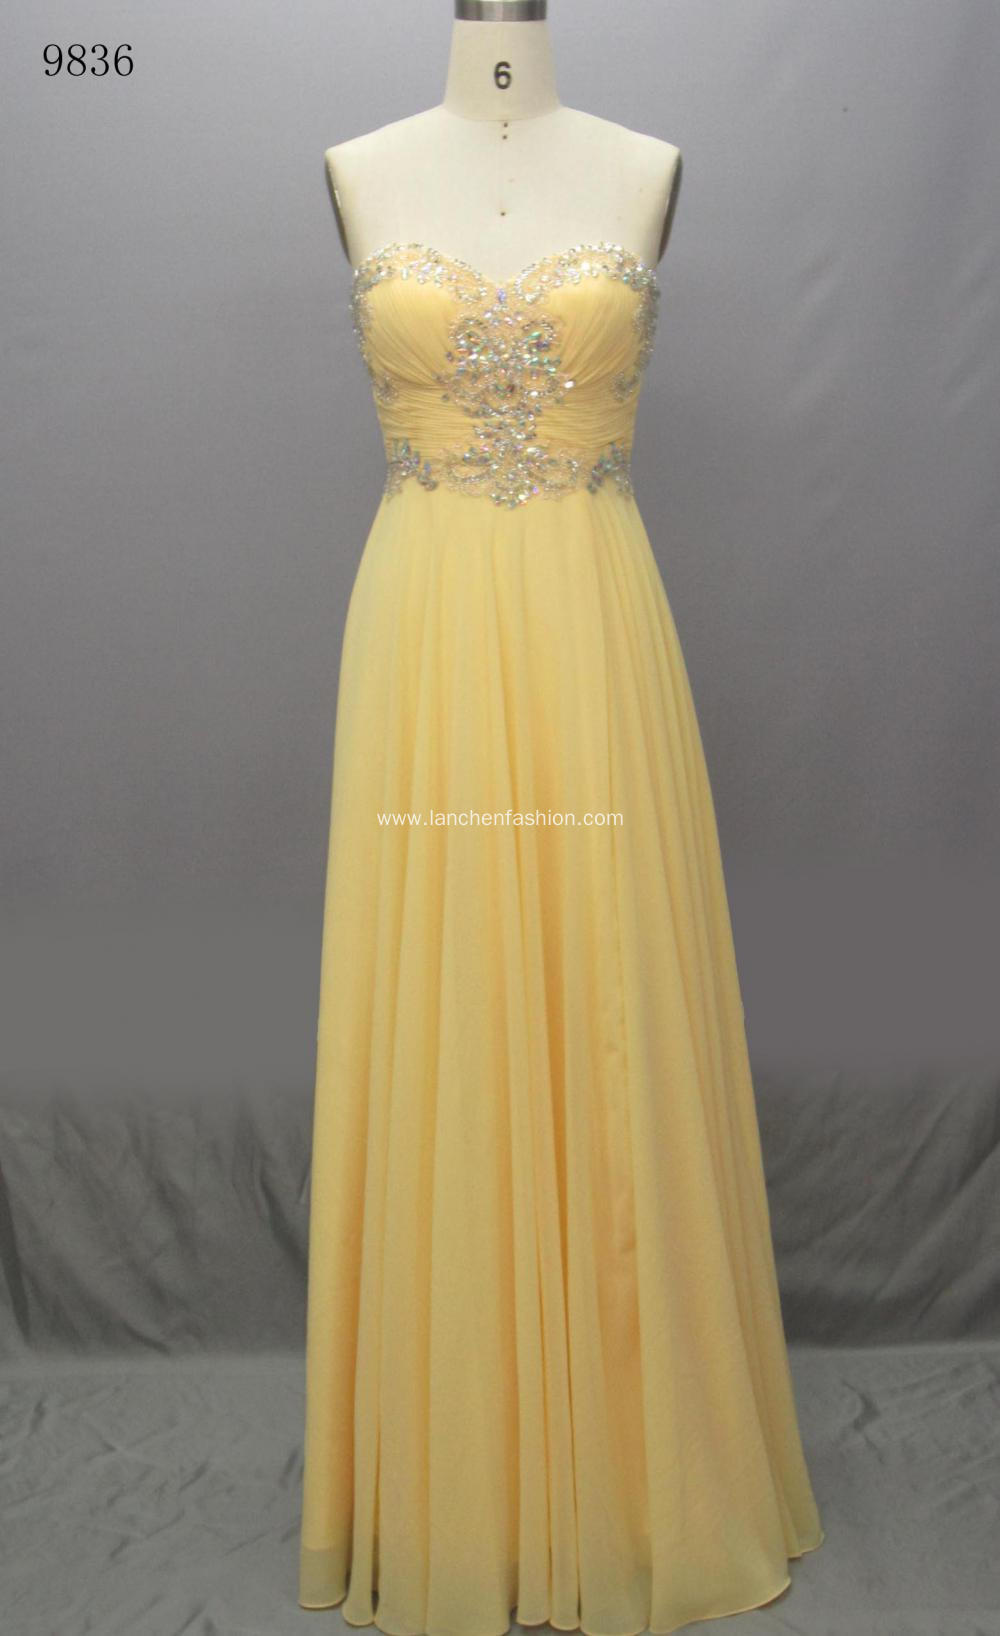 Chiffon Cocktail Prom Evening Dress